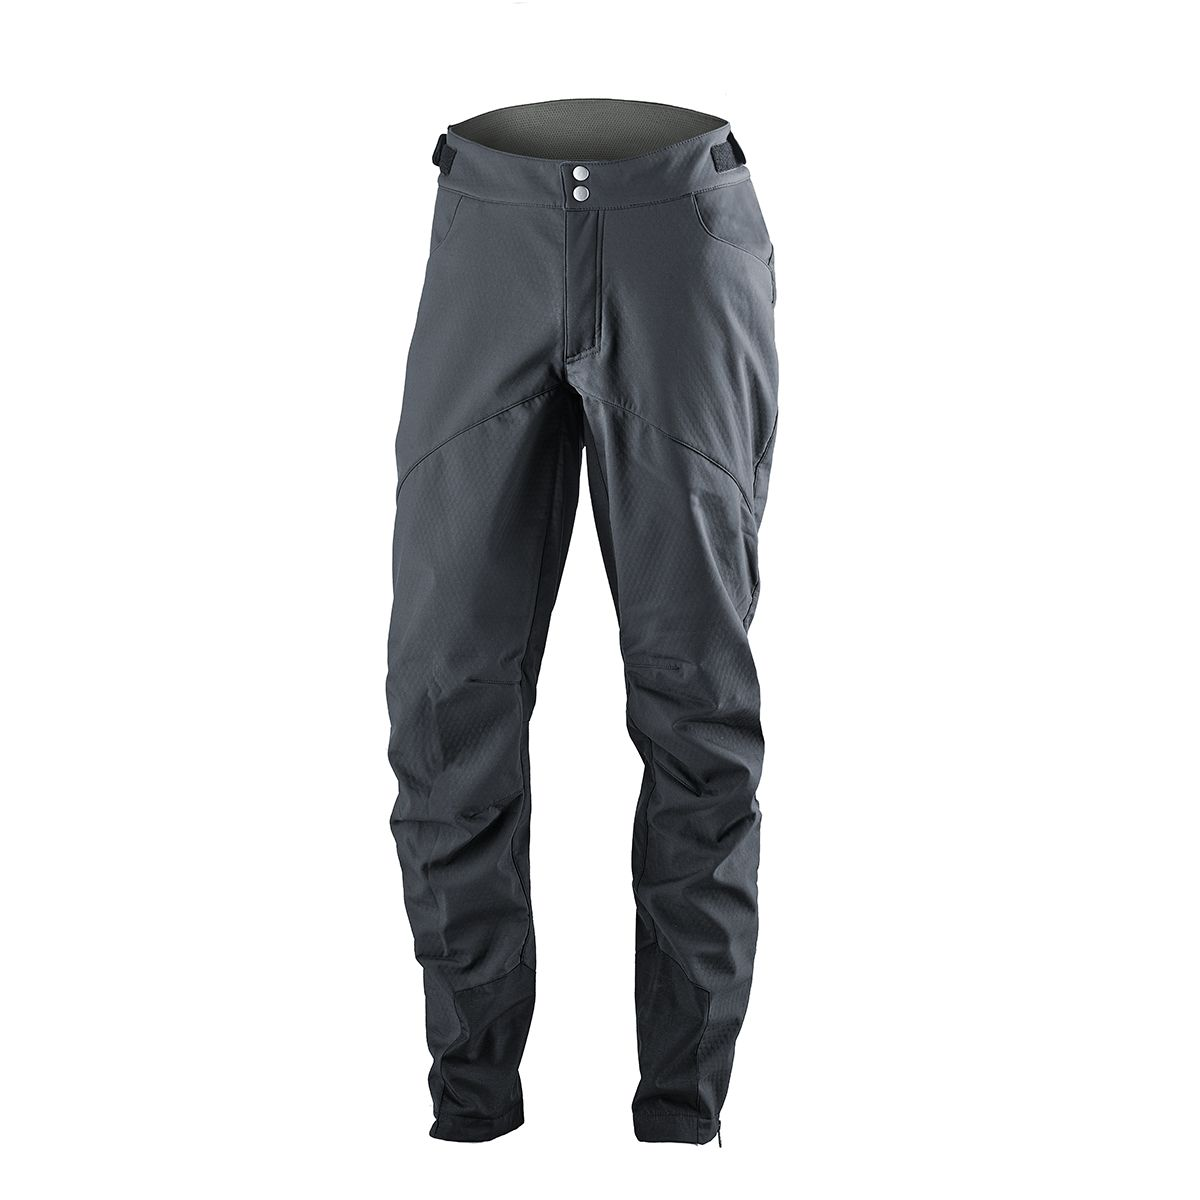 Men's ZETAR Softshell Pants